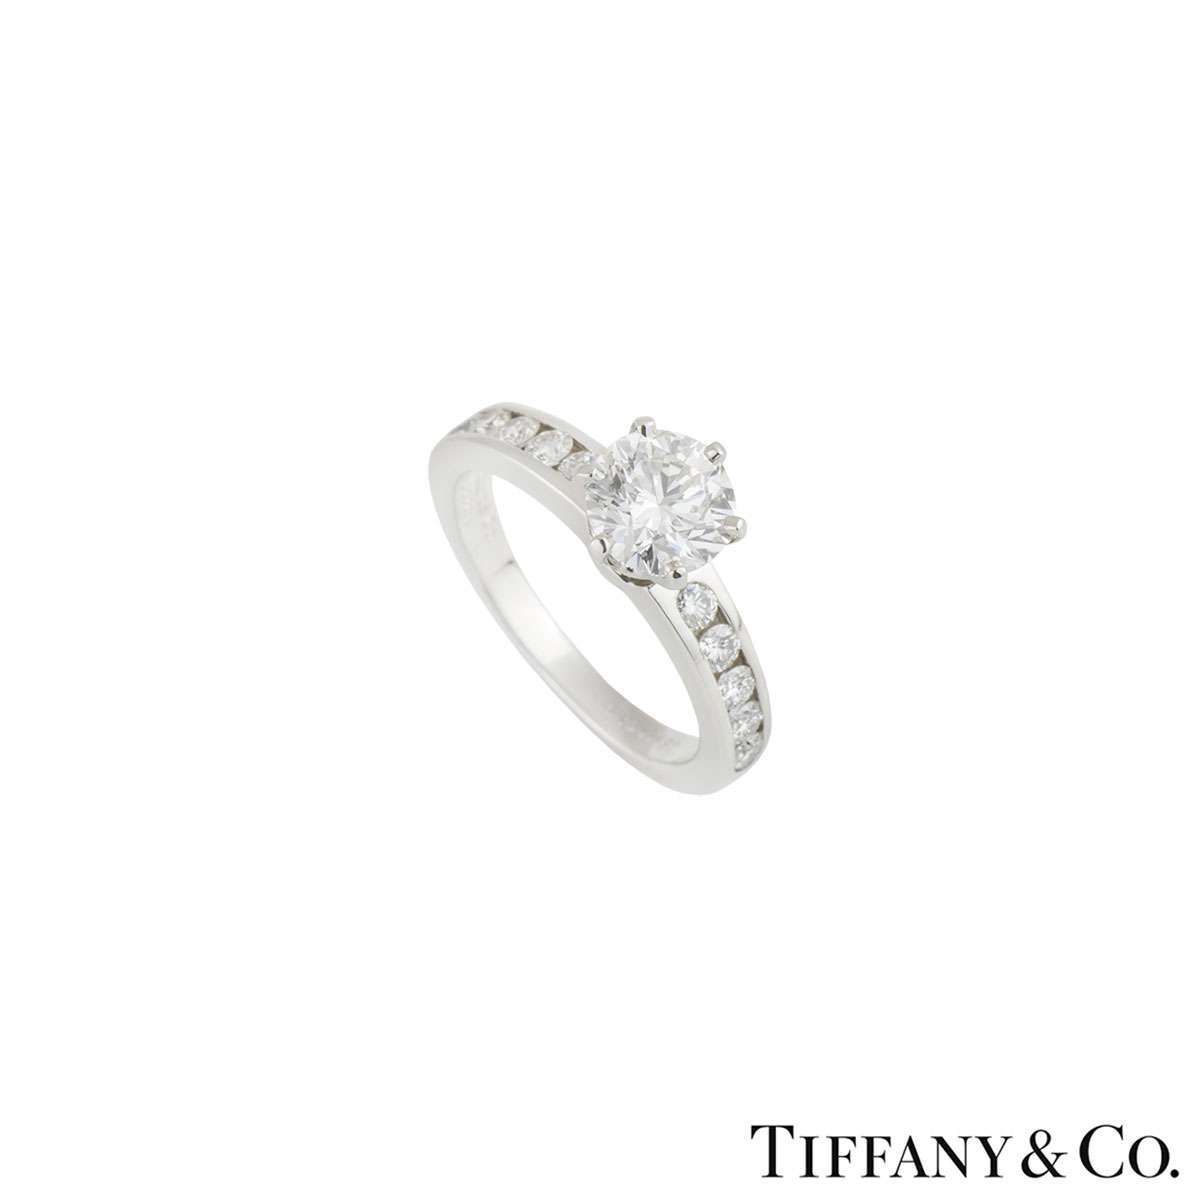 The Tiffany Setting with Diamond Band 1.06ct G/VS1 XXX